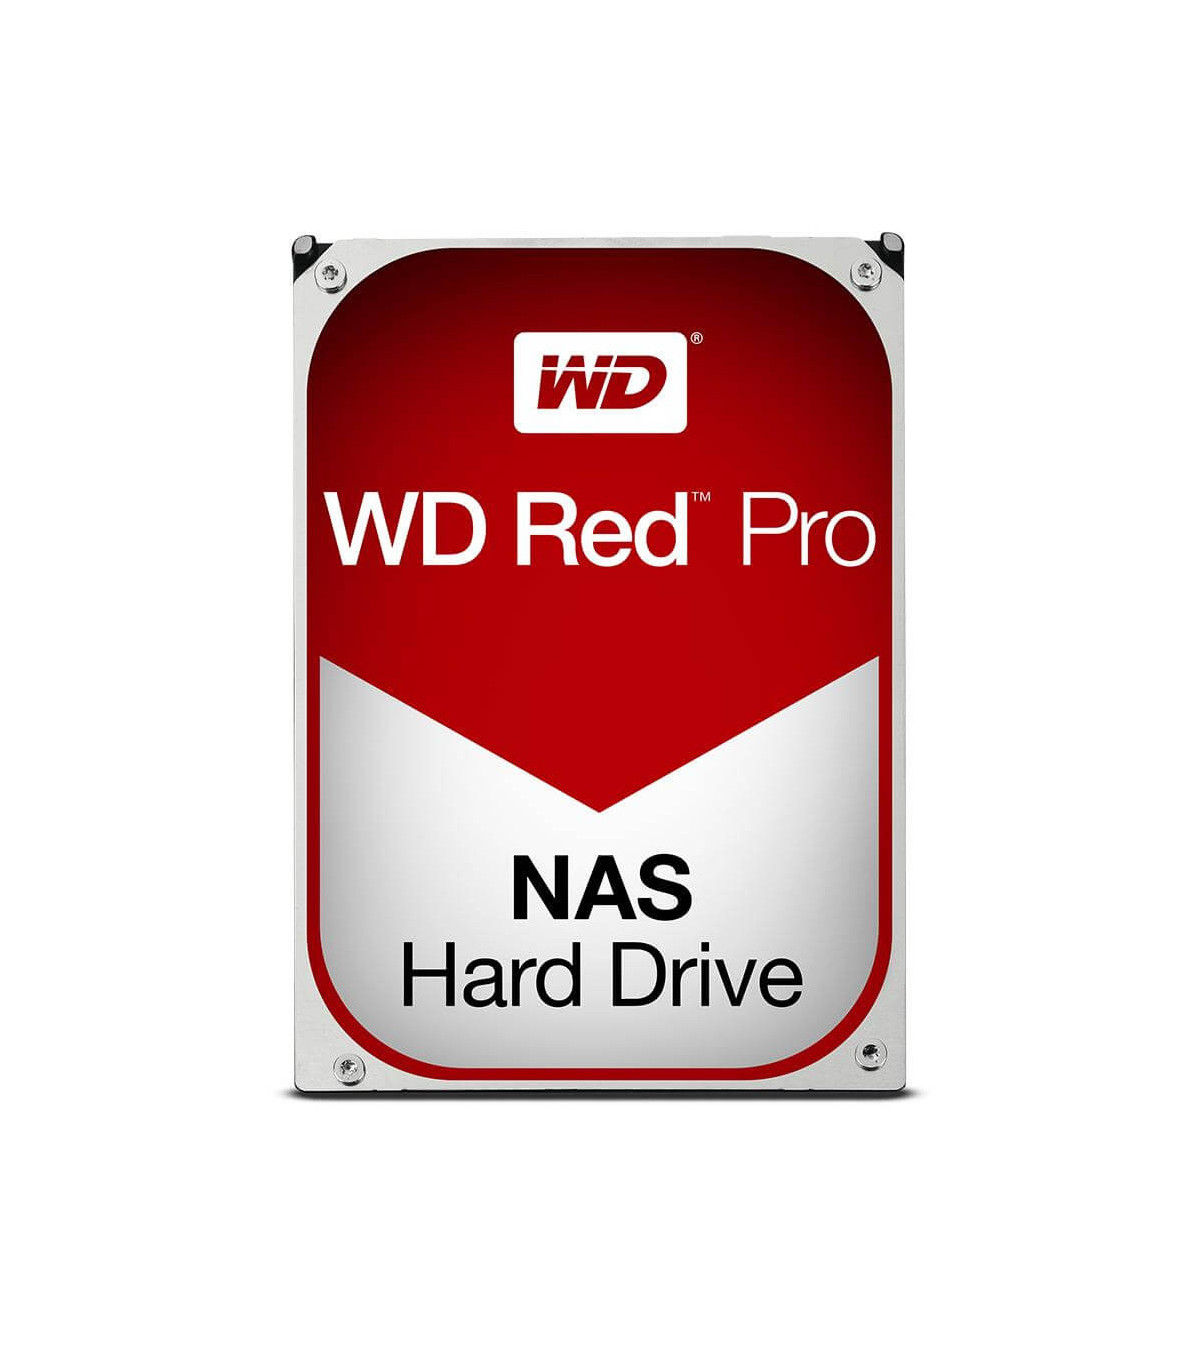 Ổ cứng chuyên dụng WD RED PRO 4TB 3.5 Inch SATA HDD 7200rpm 128MB Cache (WD4002FFWX)  | WD RED PRO  | WESTERN DIGITAL  | khue...